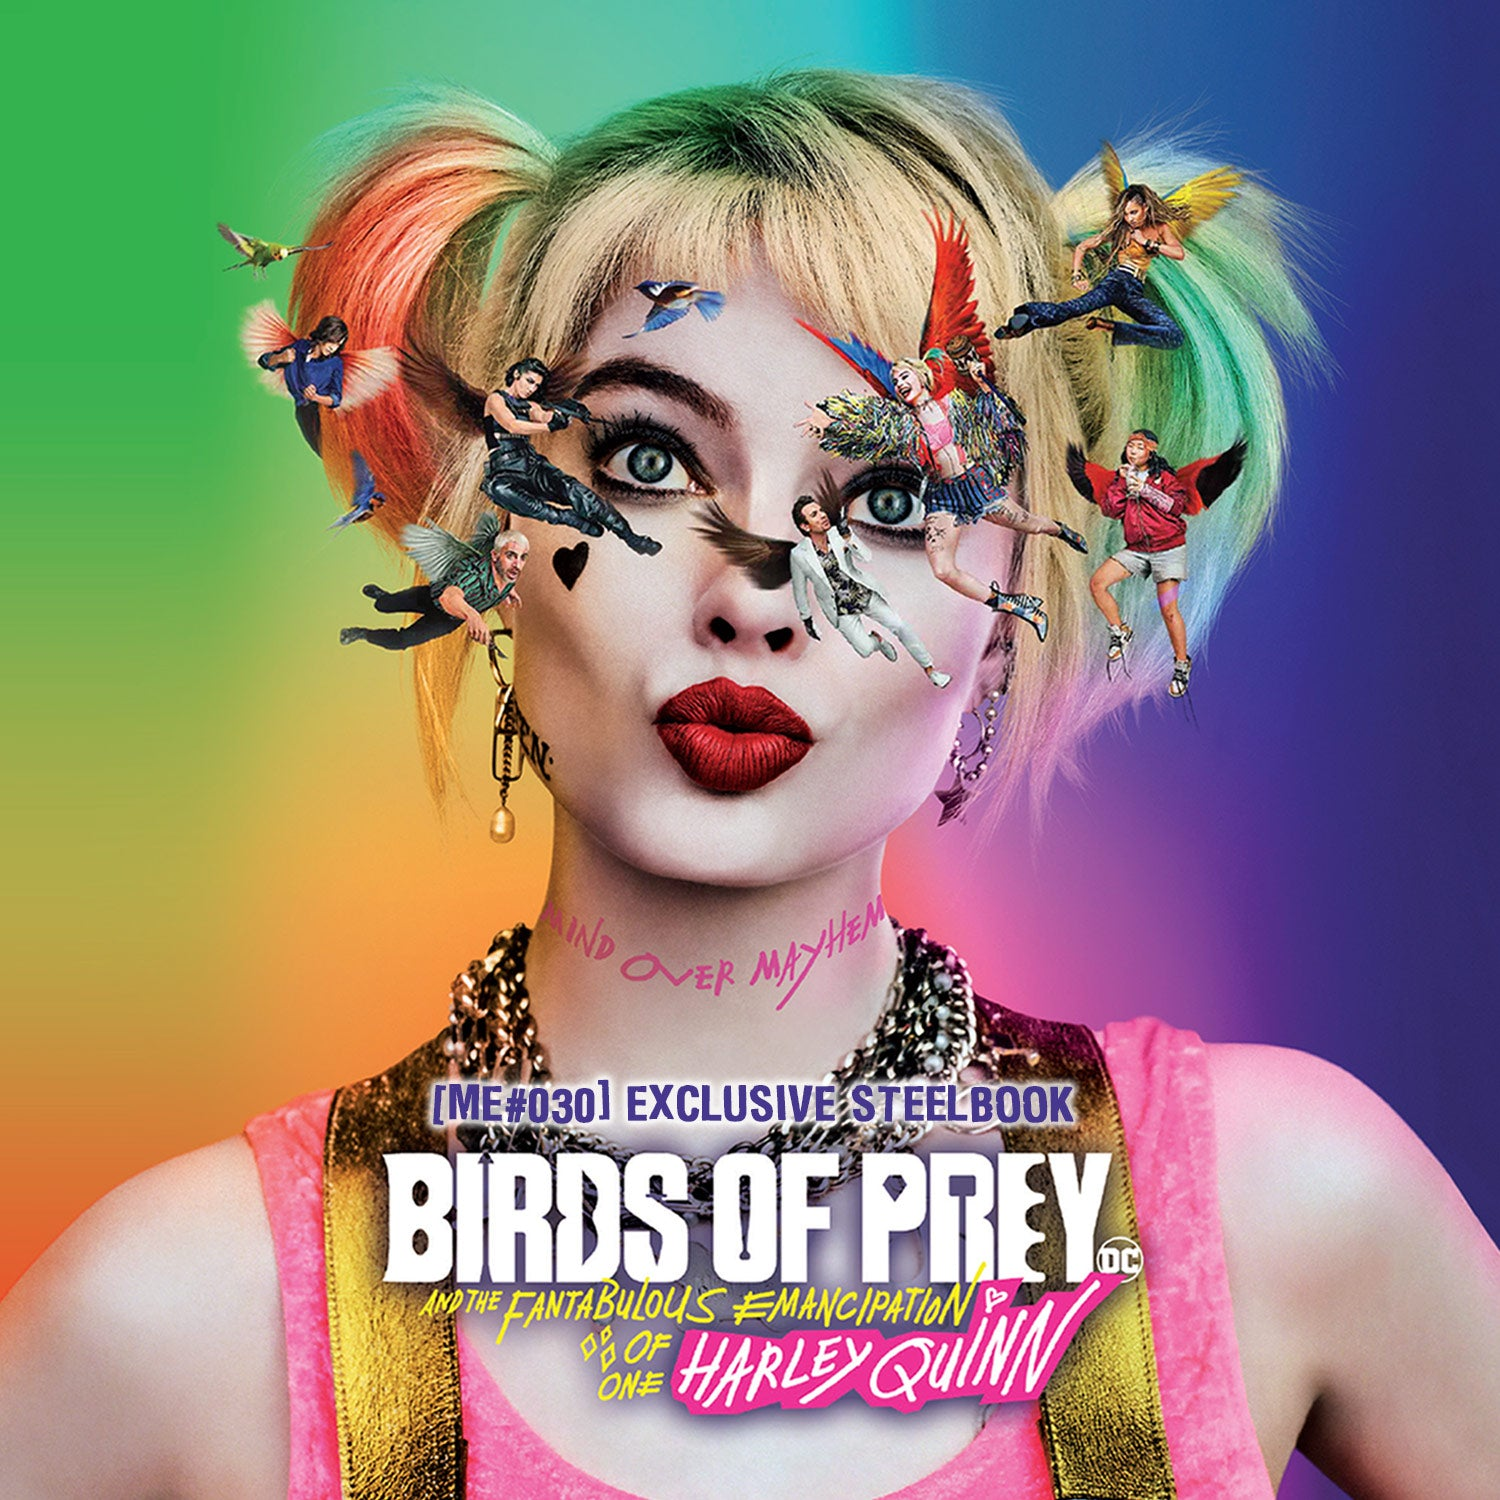 Birds of Prey Pre-order